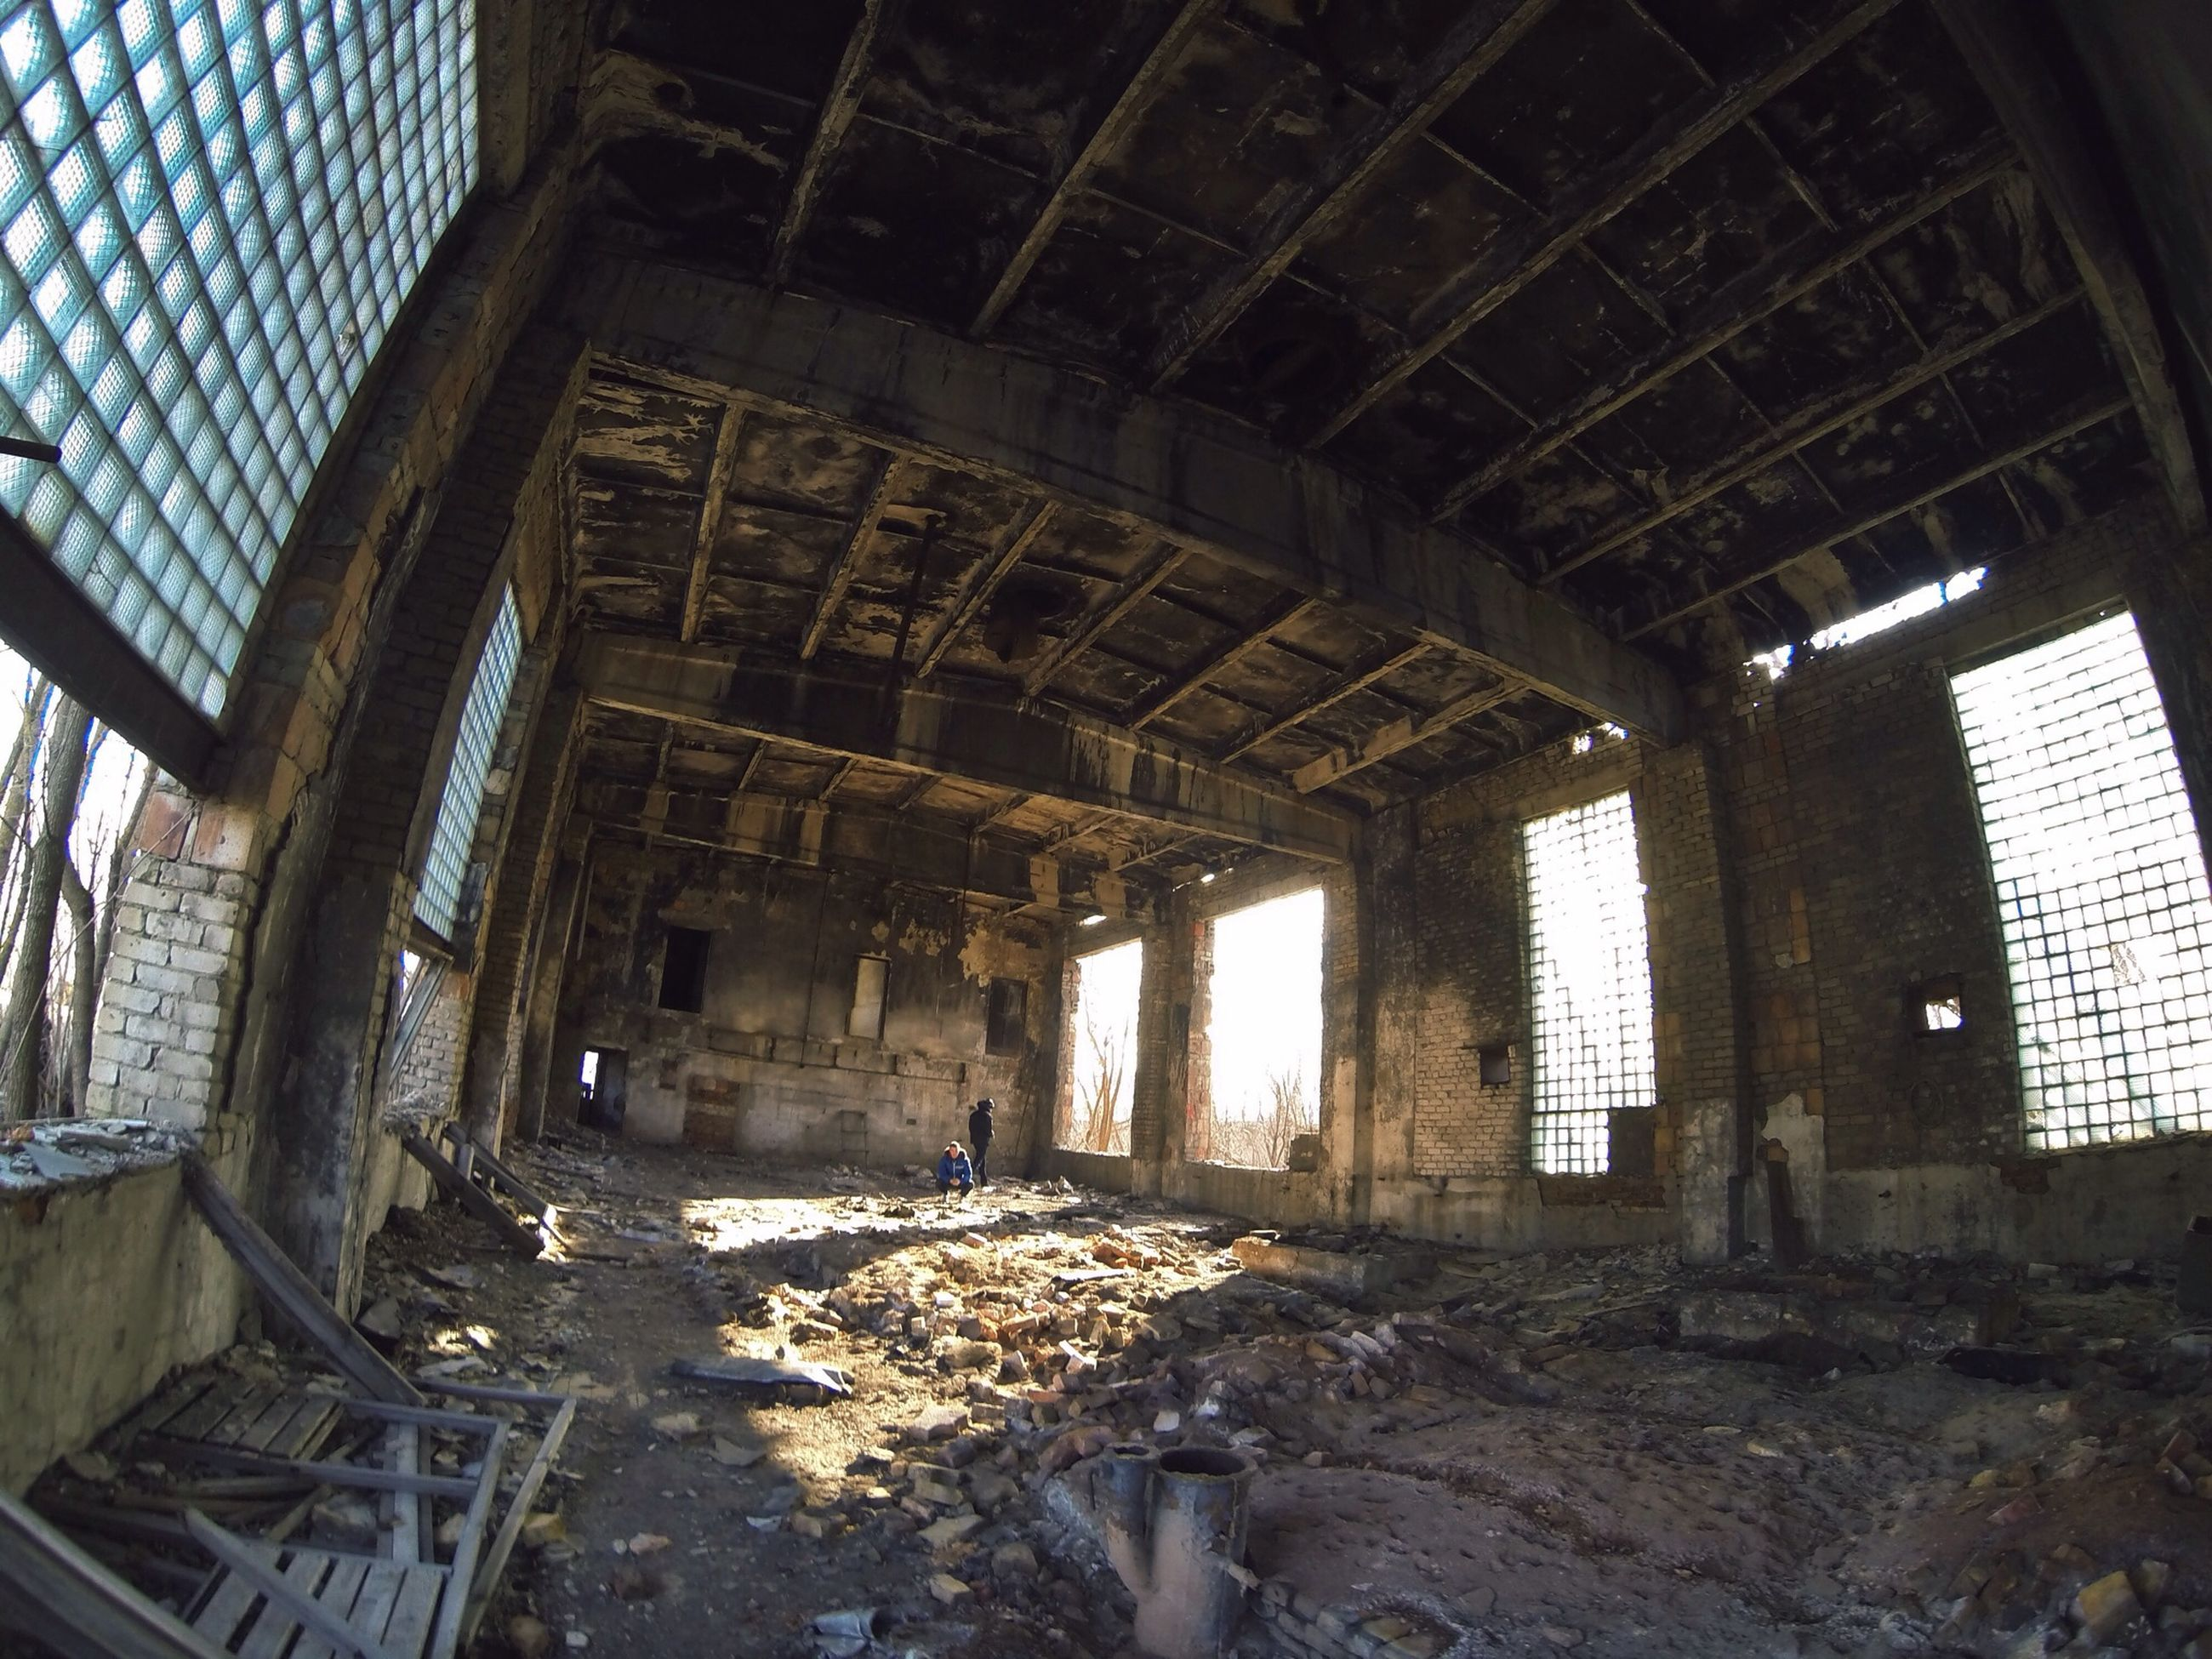 indoors, abandoned, architecture, built structure, obsolete, damaged, run-down, deterioration, interior, old, ceiling, ruined, bad condition, arch, weathered, old ruin, messy, destruction, broken, window